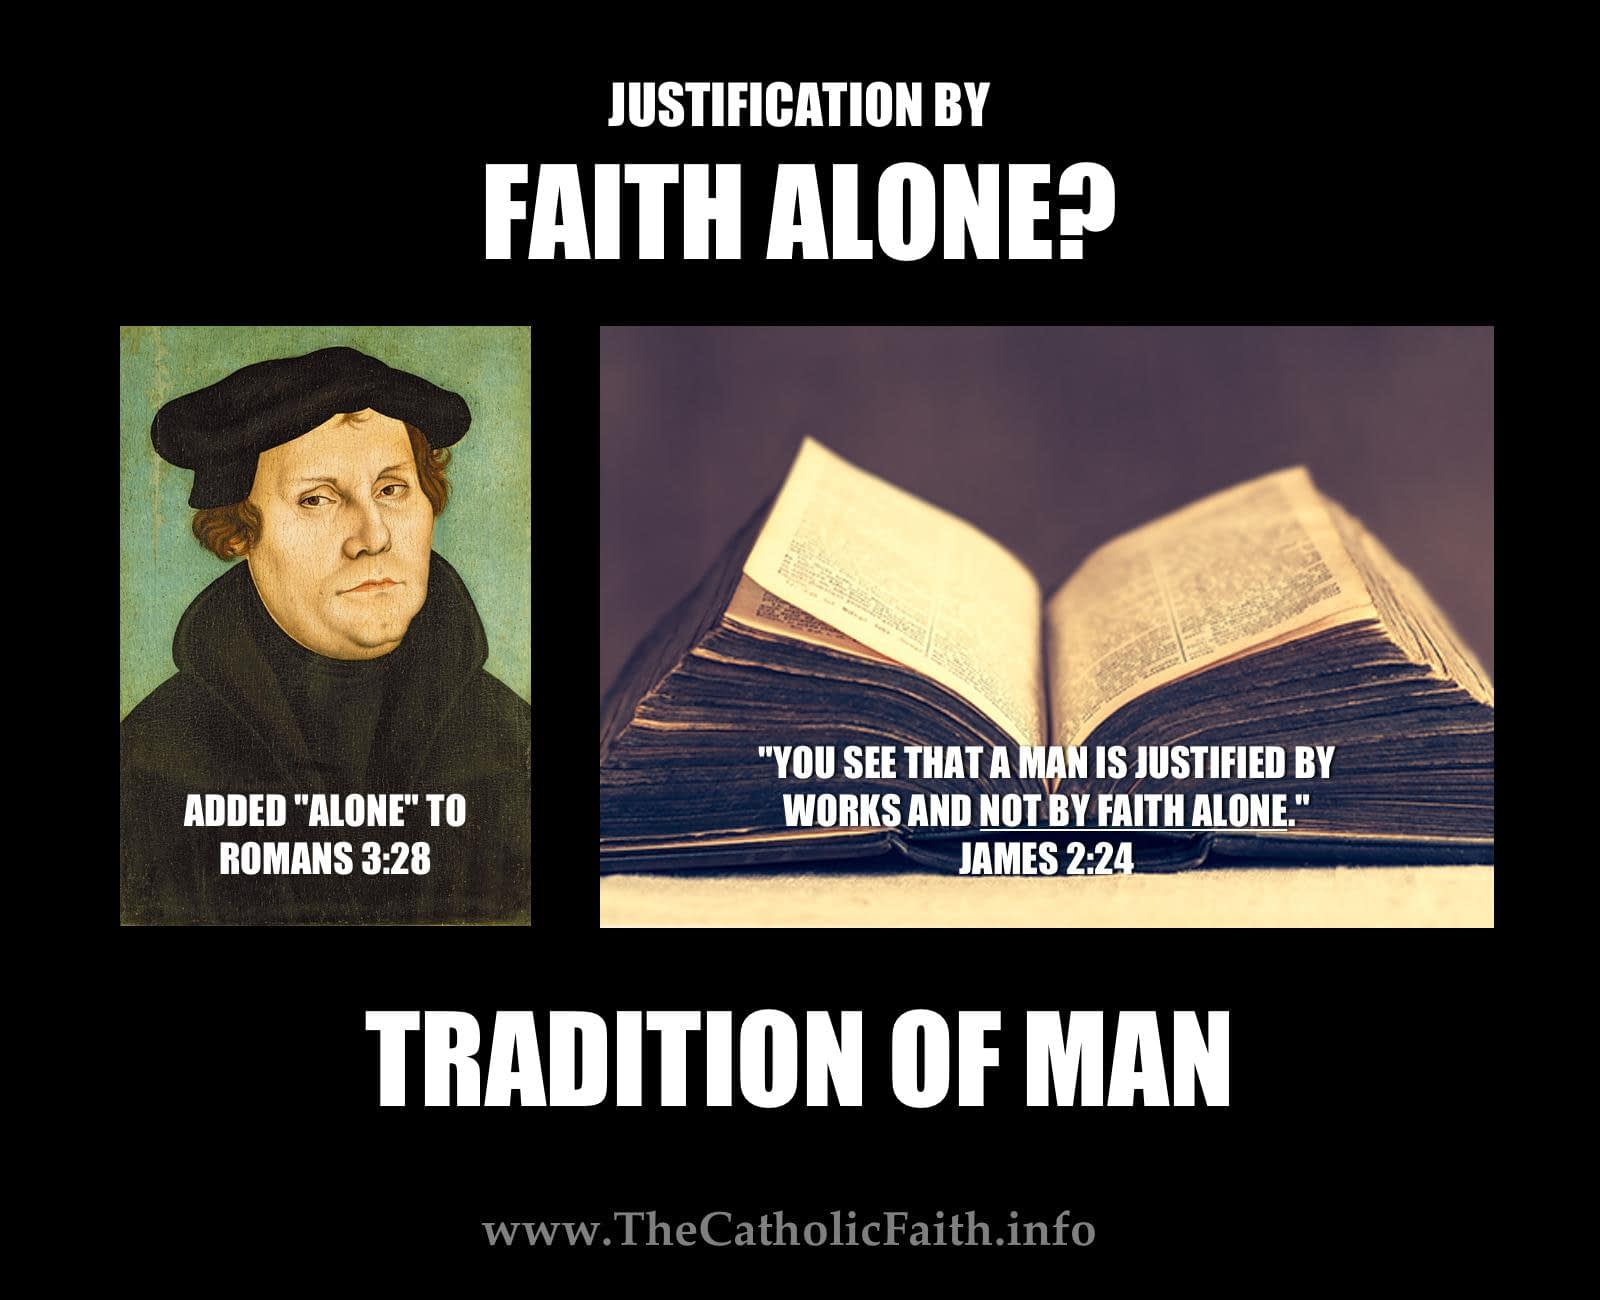 Faith Alone?